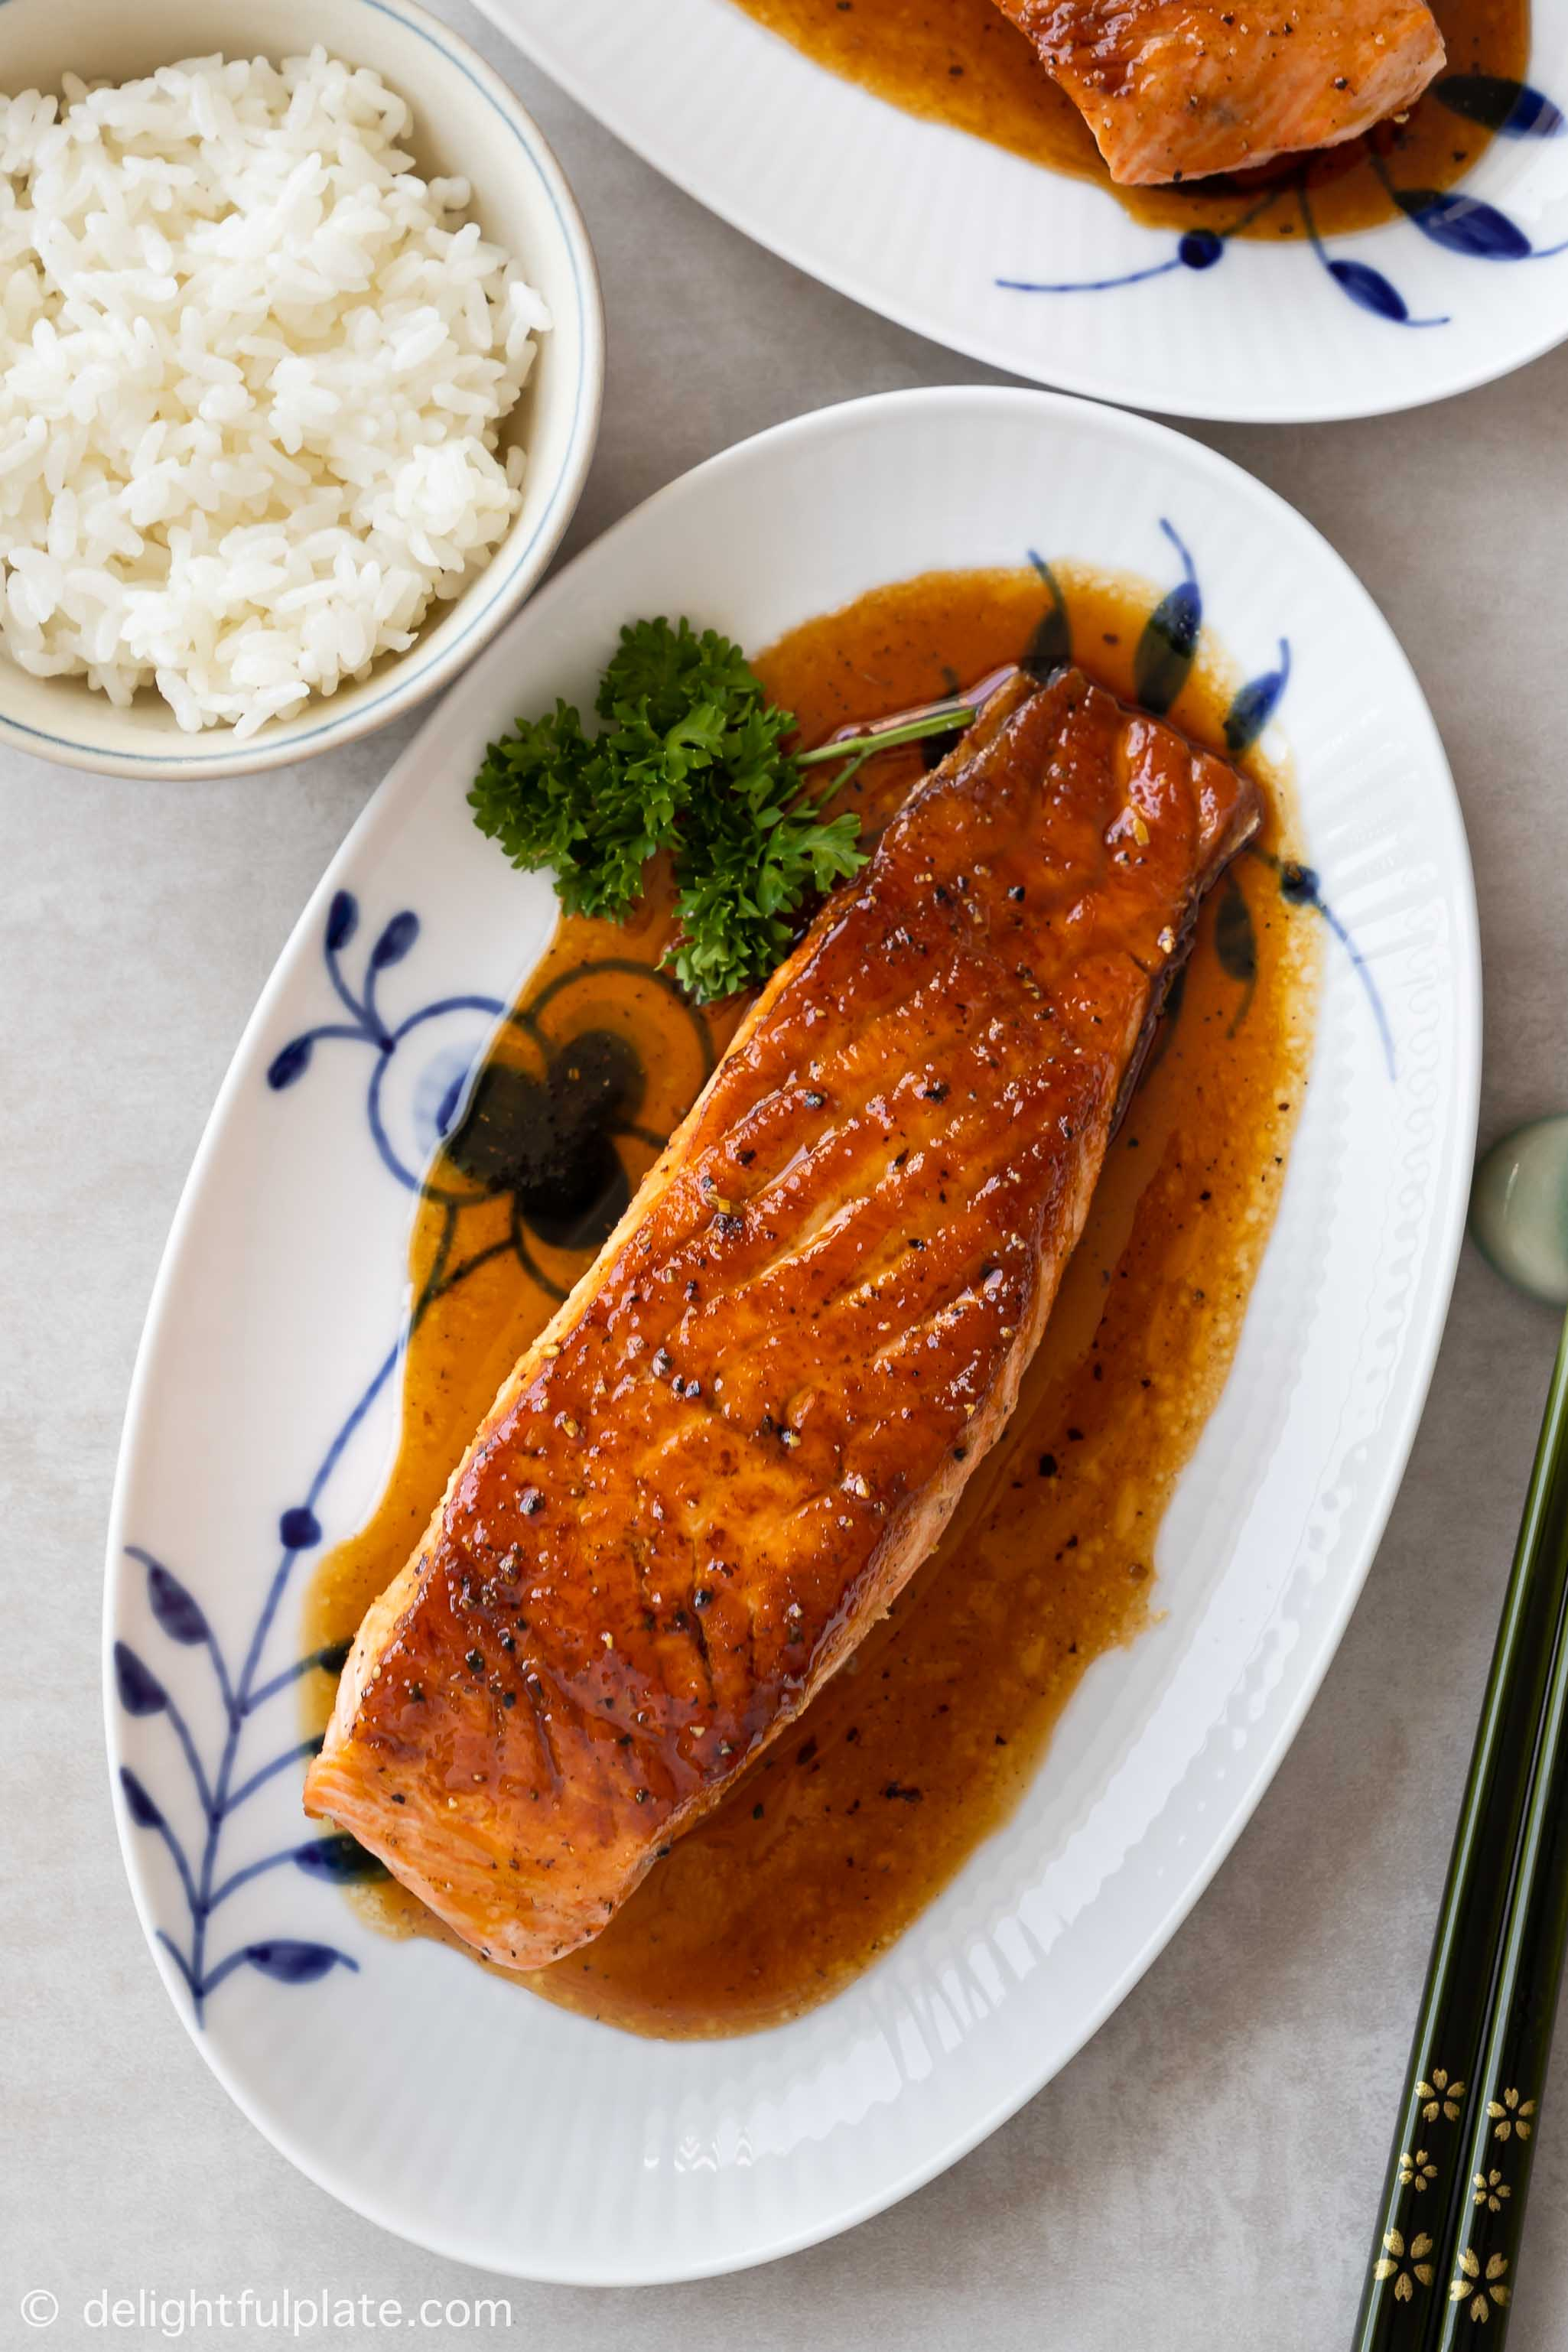 a glazed salmon fillet on a serving plate, accompanied with steamed rice